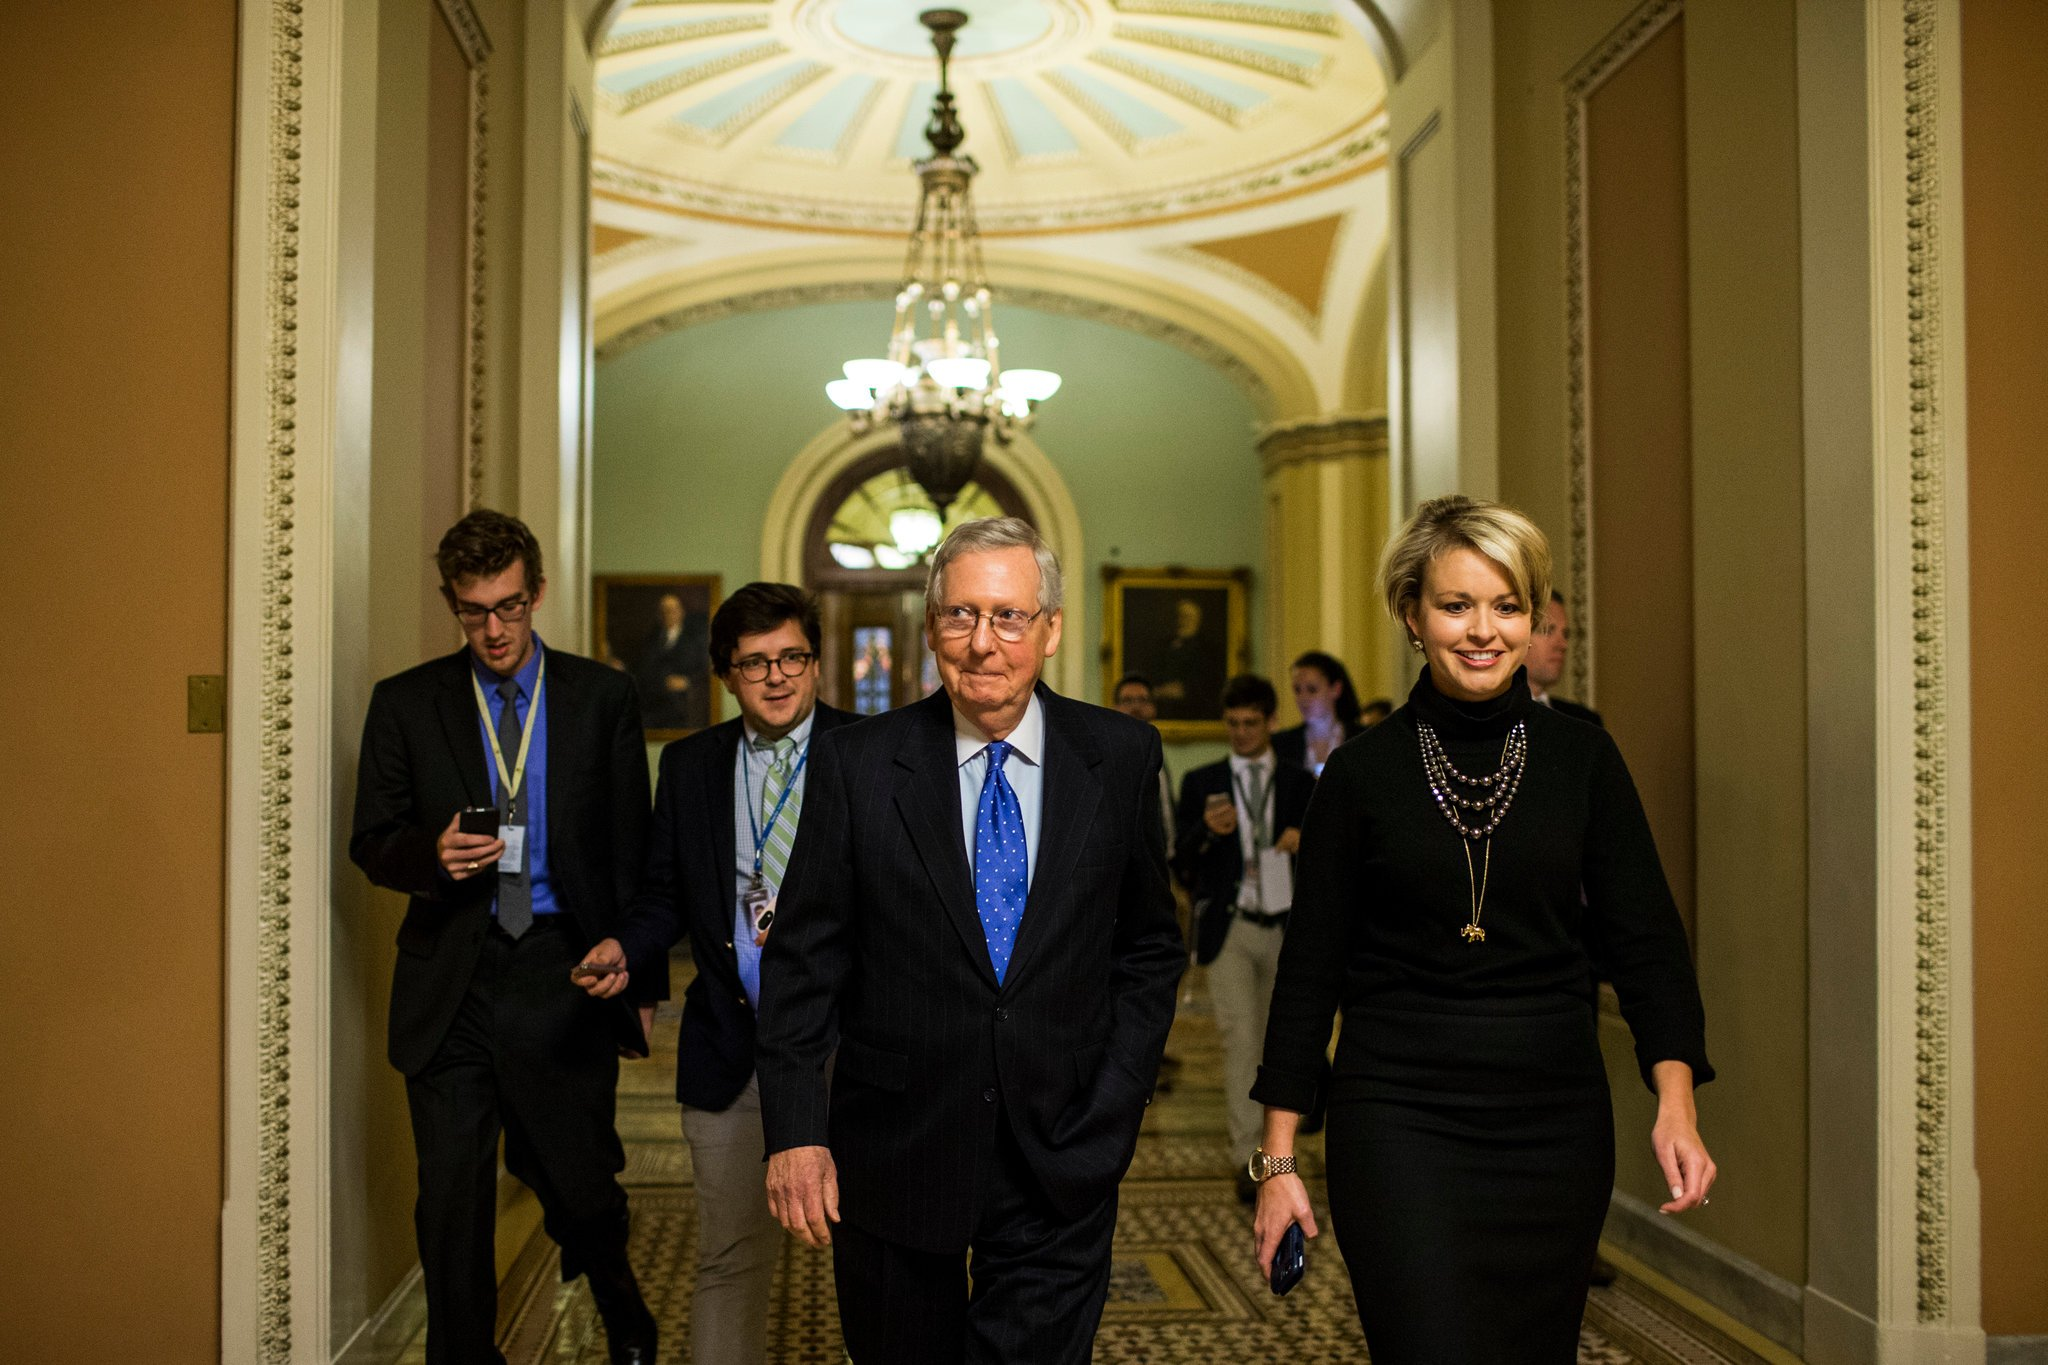 Mitch McConnell. Photo taken by NYT